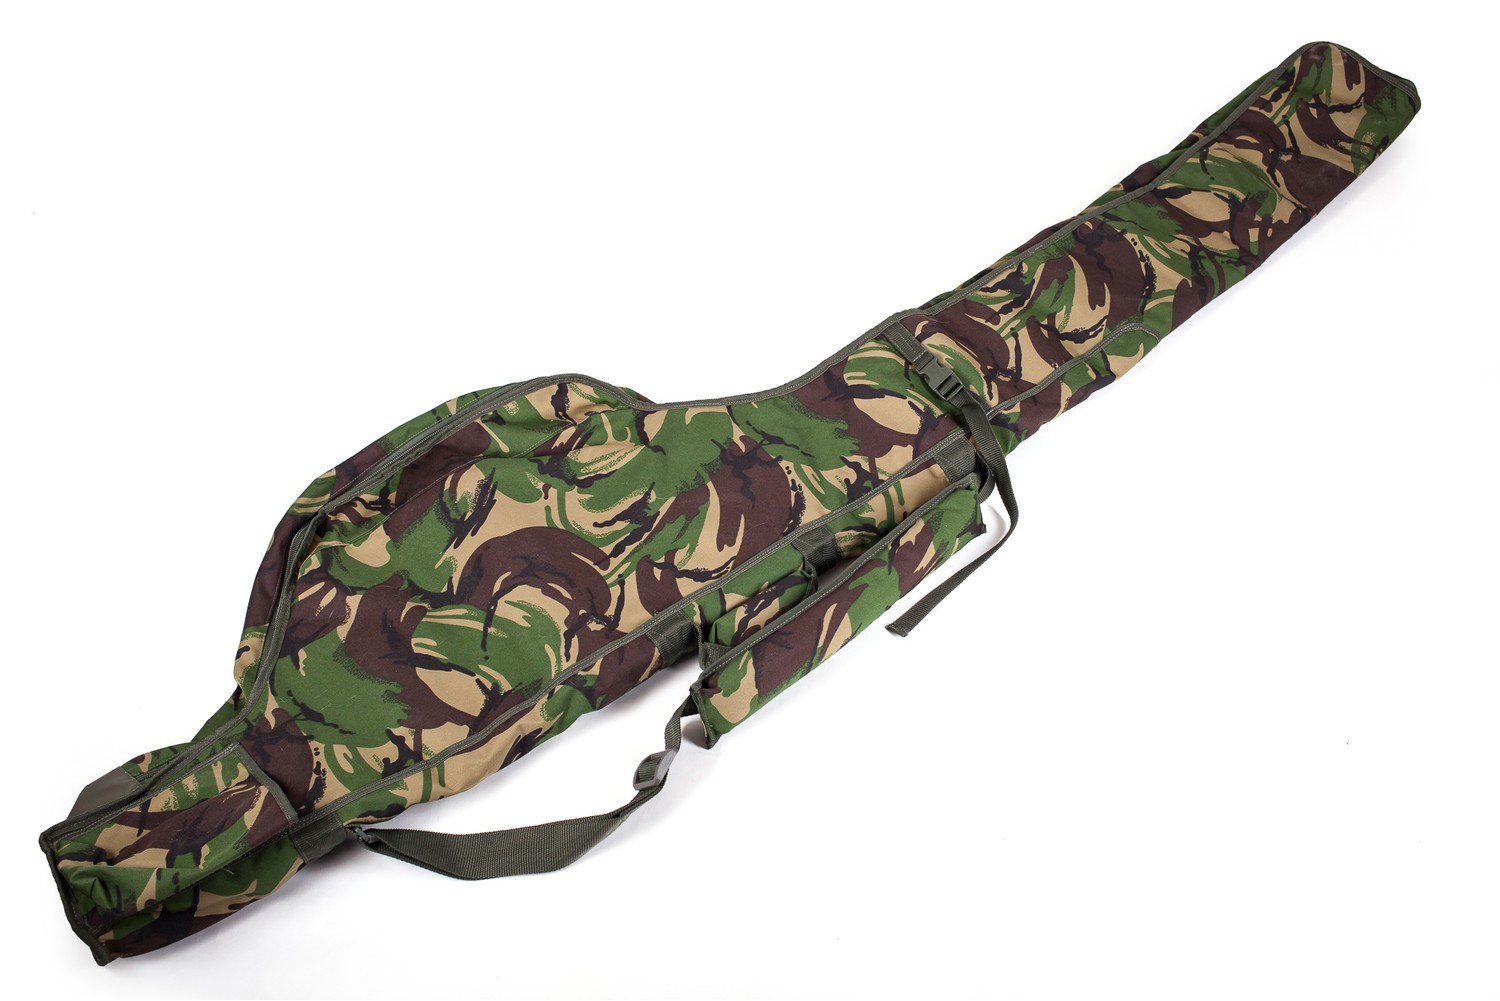 Cotswold Aquarius - Woodland Camo 3 Rod 13ft Trident Rod Holdall